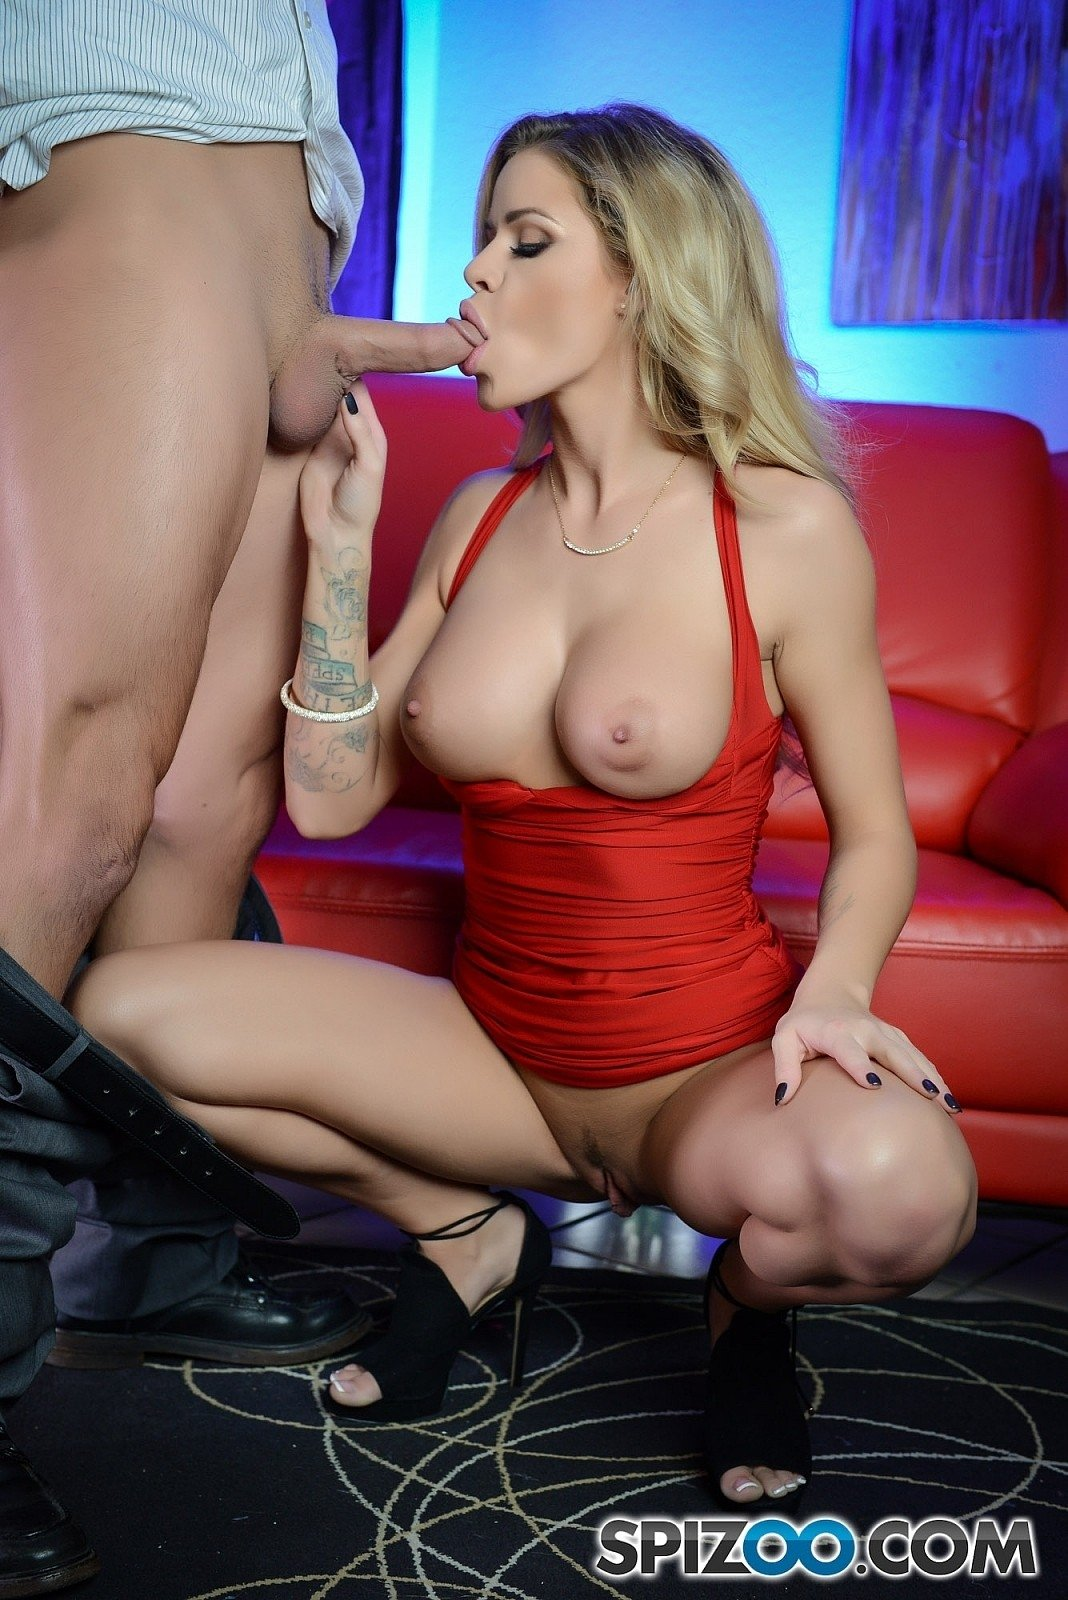 Free web cams couples #7